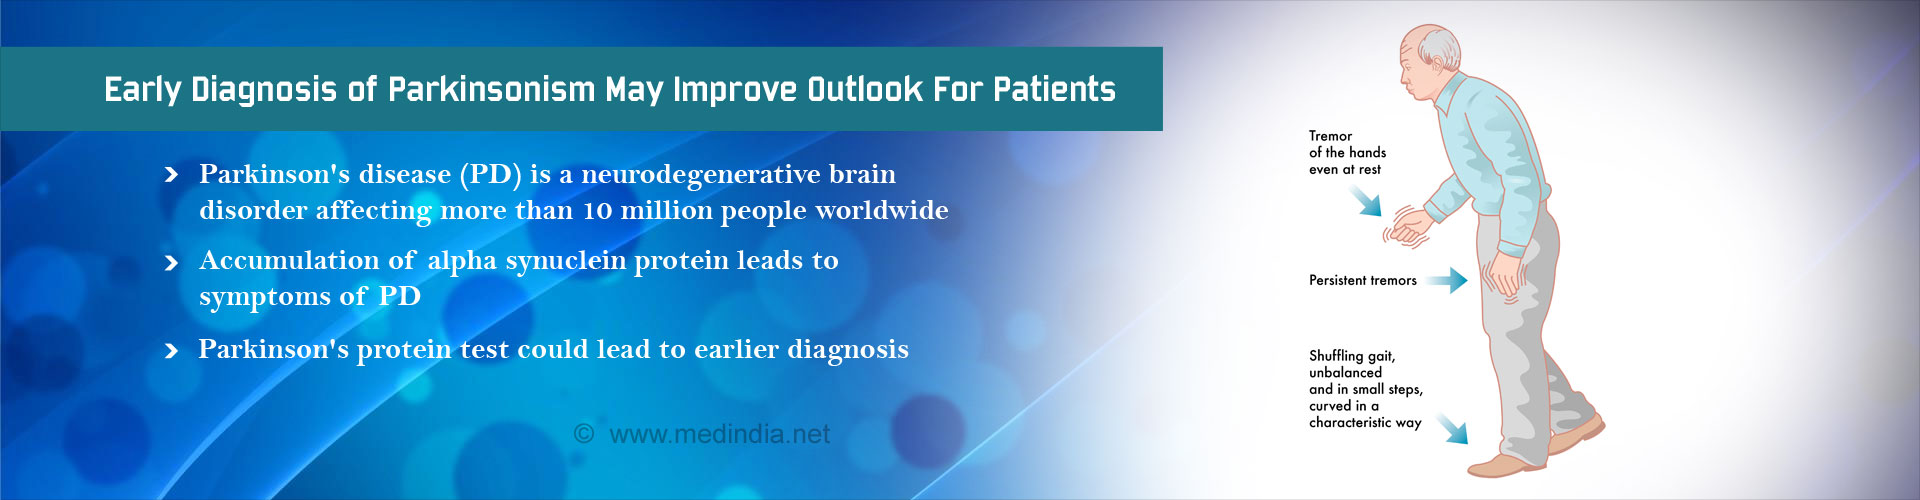 New Test for Early Diagnosis of Parkinson's Disease may Improve Outlook for Patients